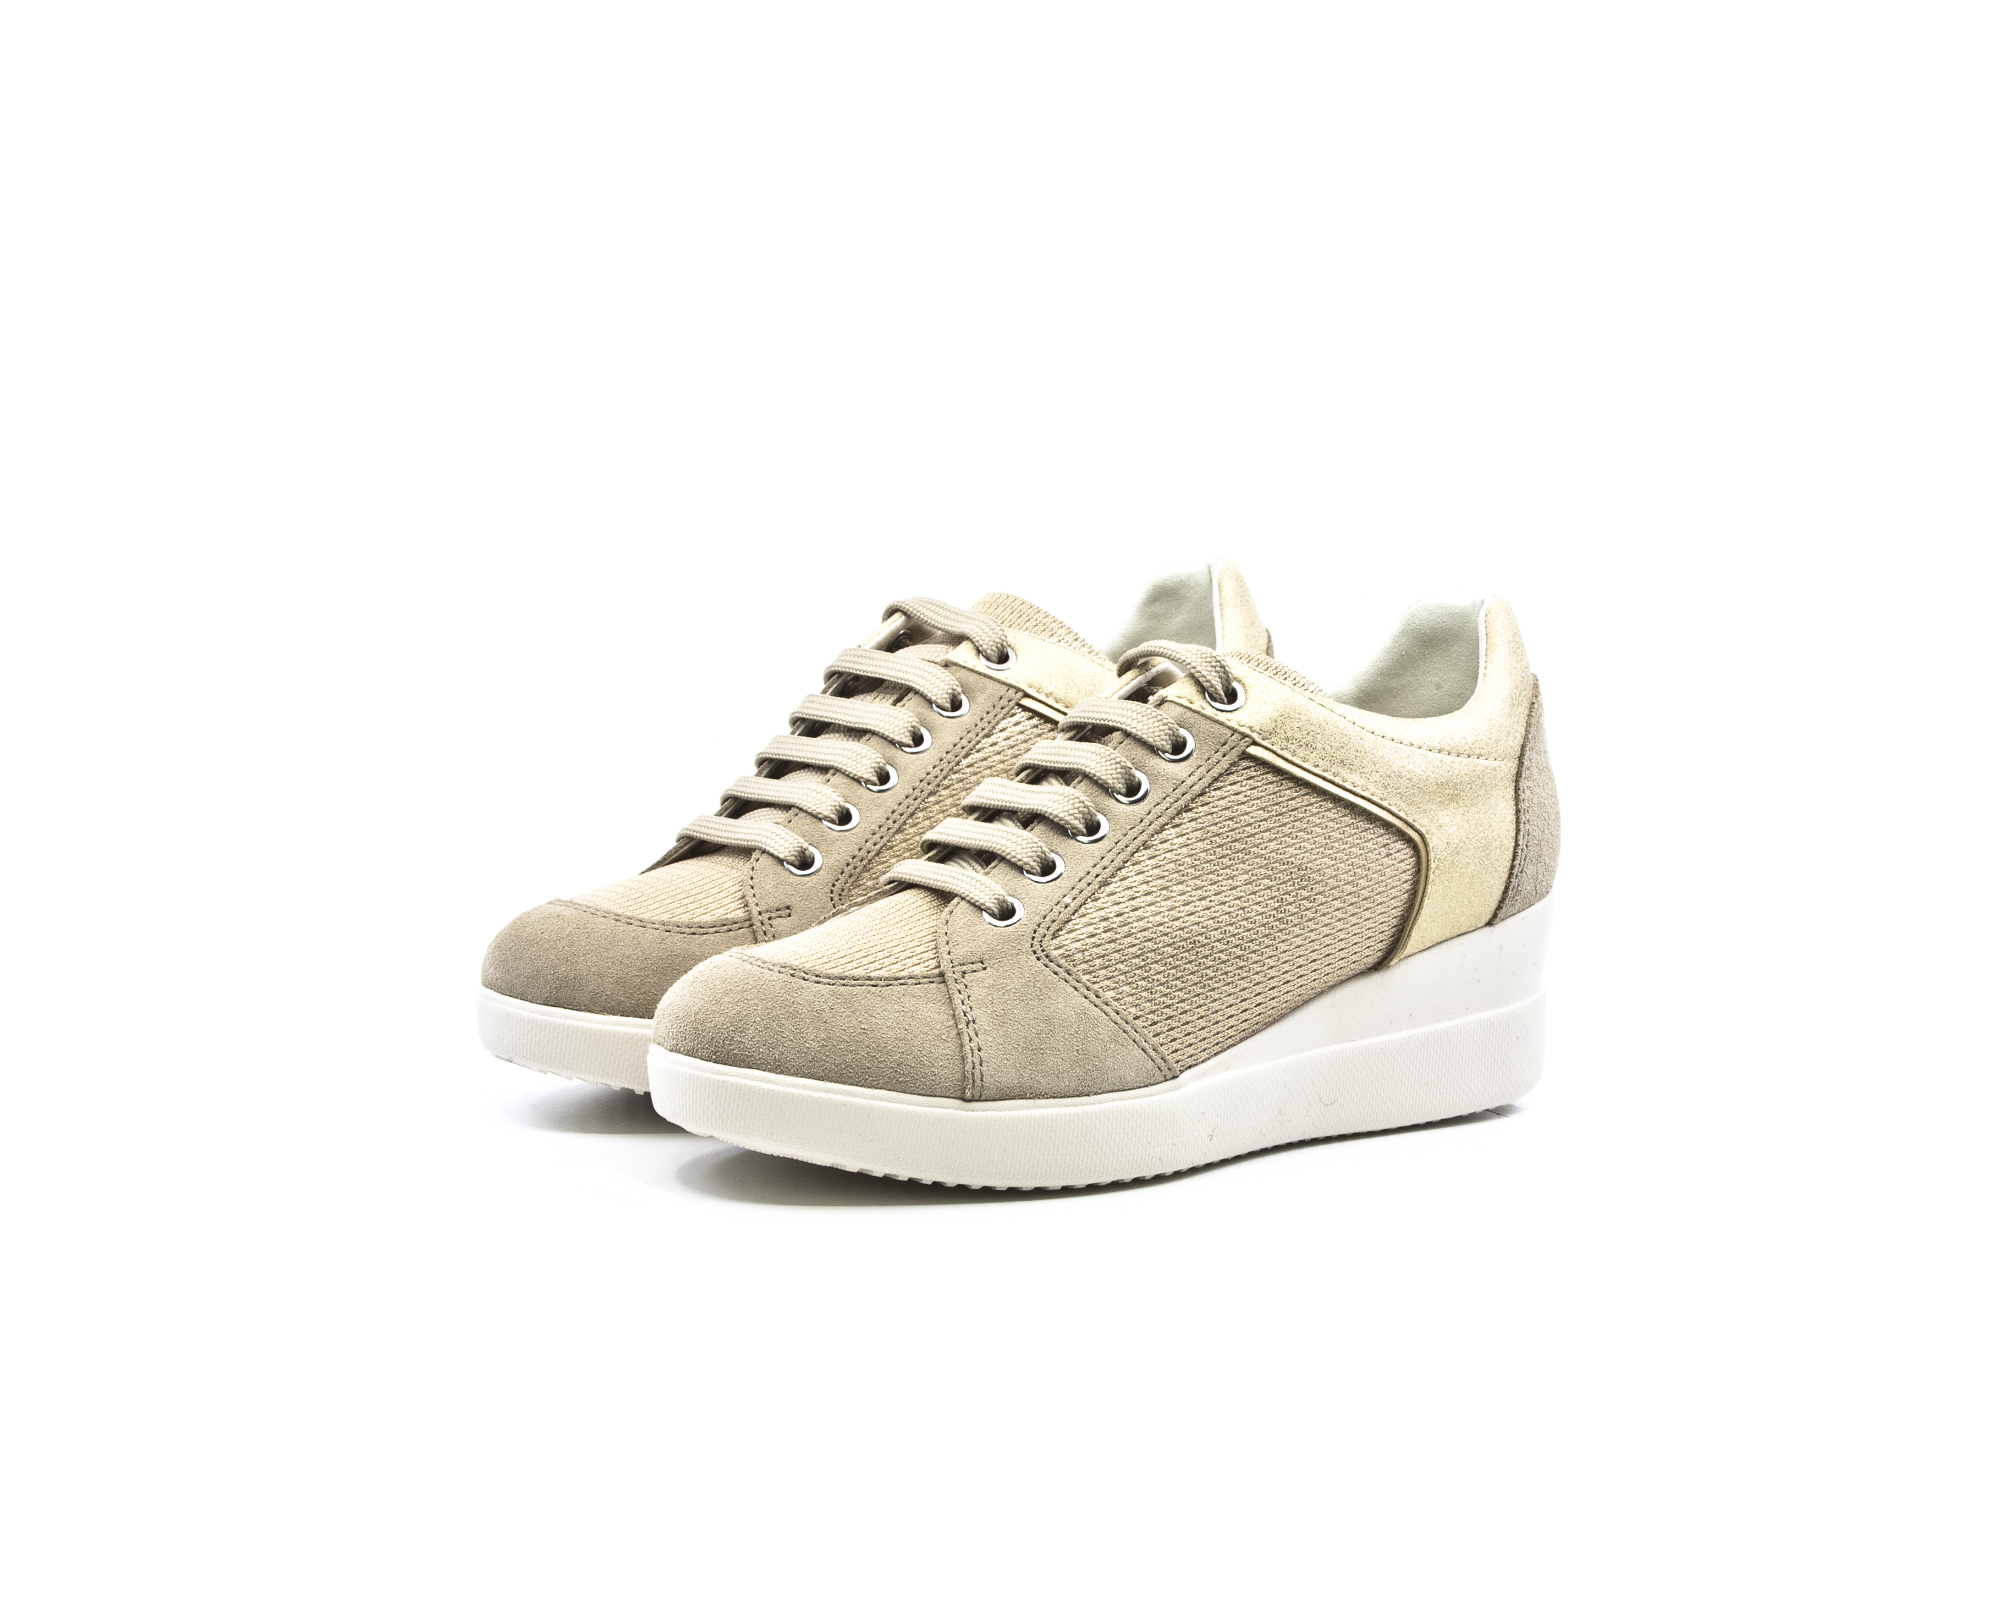 4d8286591e6 Geox Stardust Γυναικεία Ανατομικά Sneakers με πλατφόρμα Taupe/Champagne  (D8230B 022LY CH6B5) - LifeShoes.gr